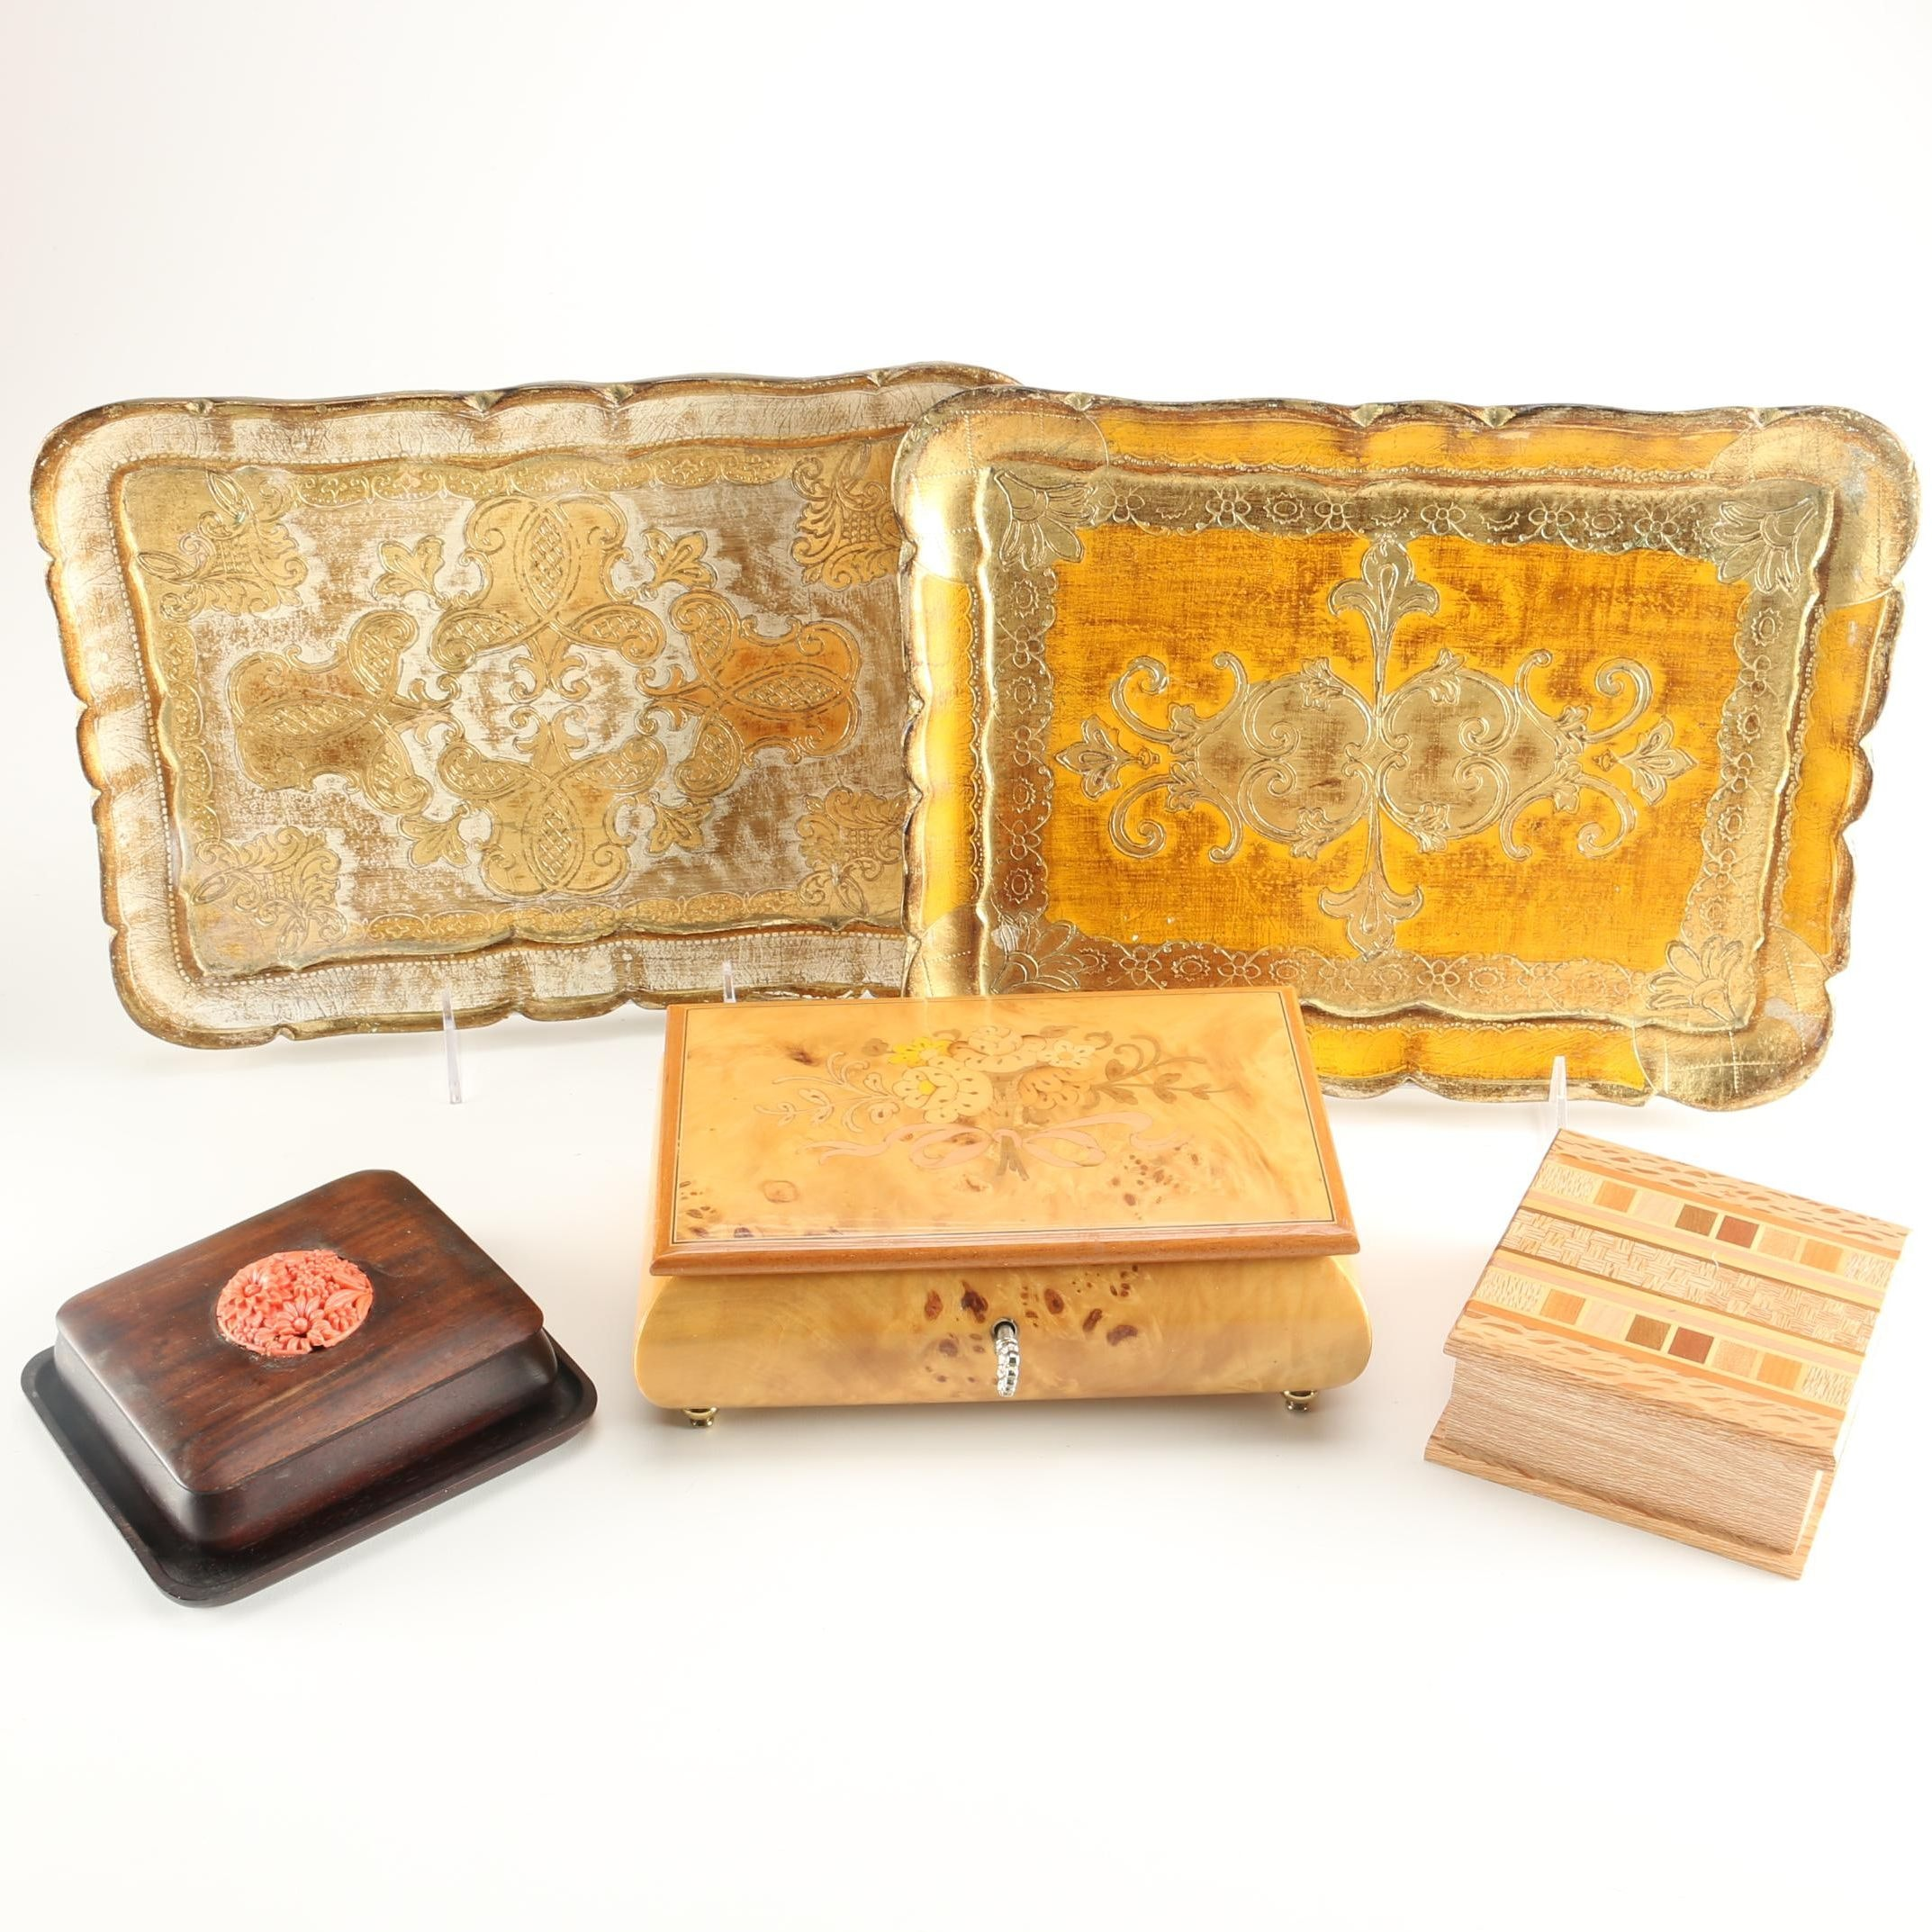 Italian Music Box, Florentine Style Trays and More